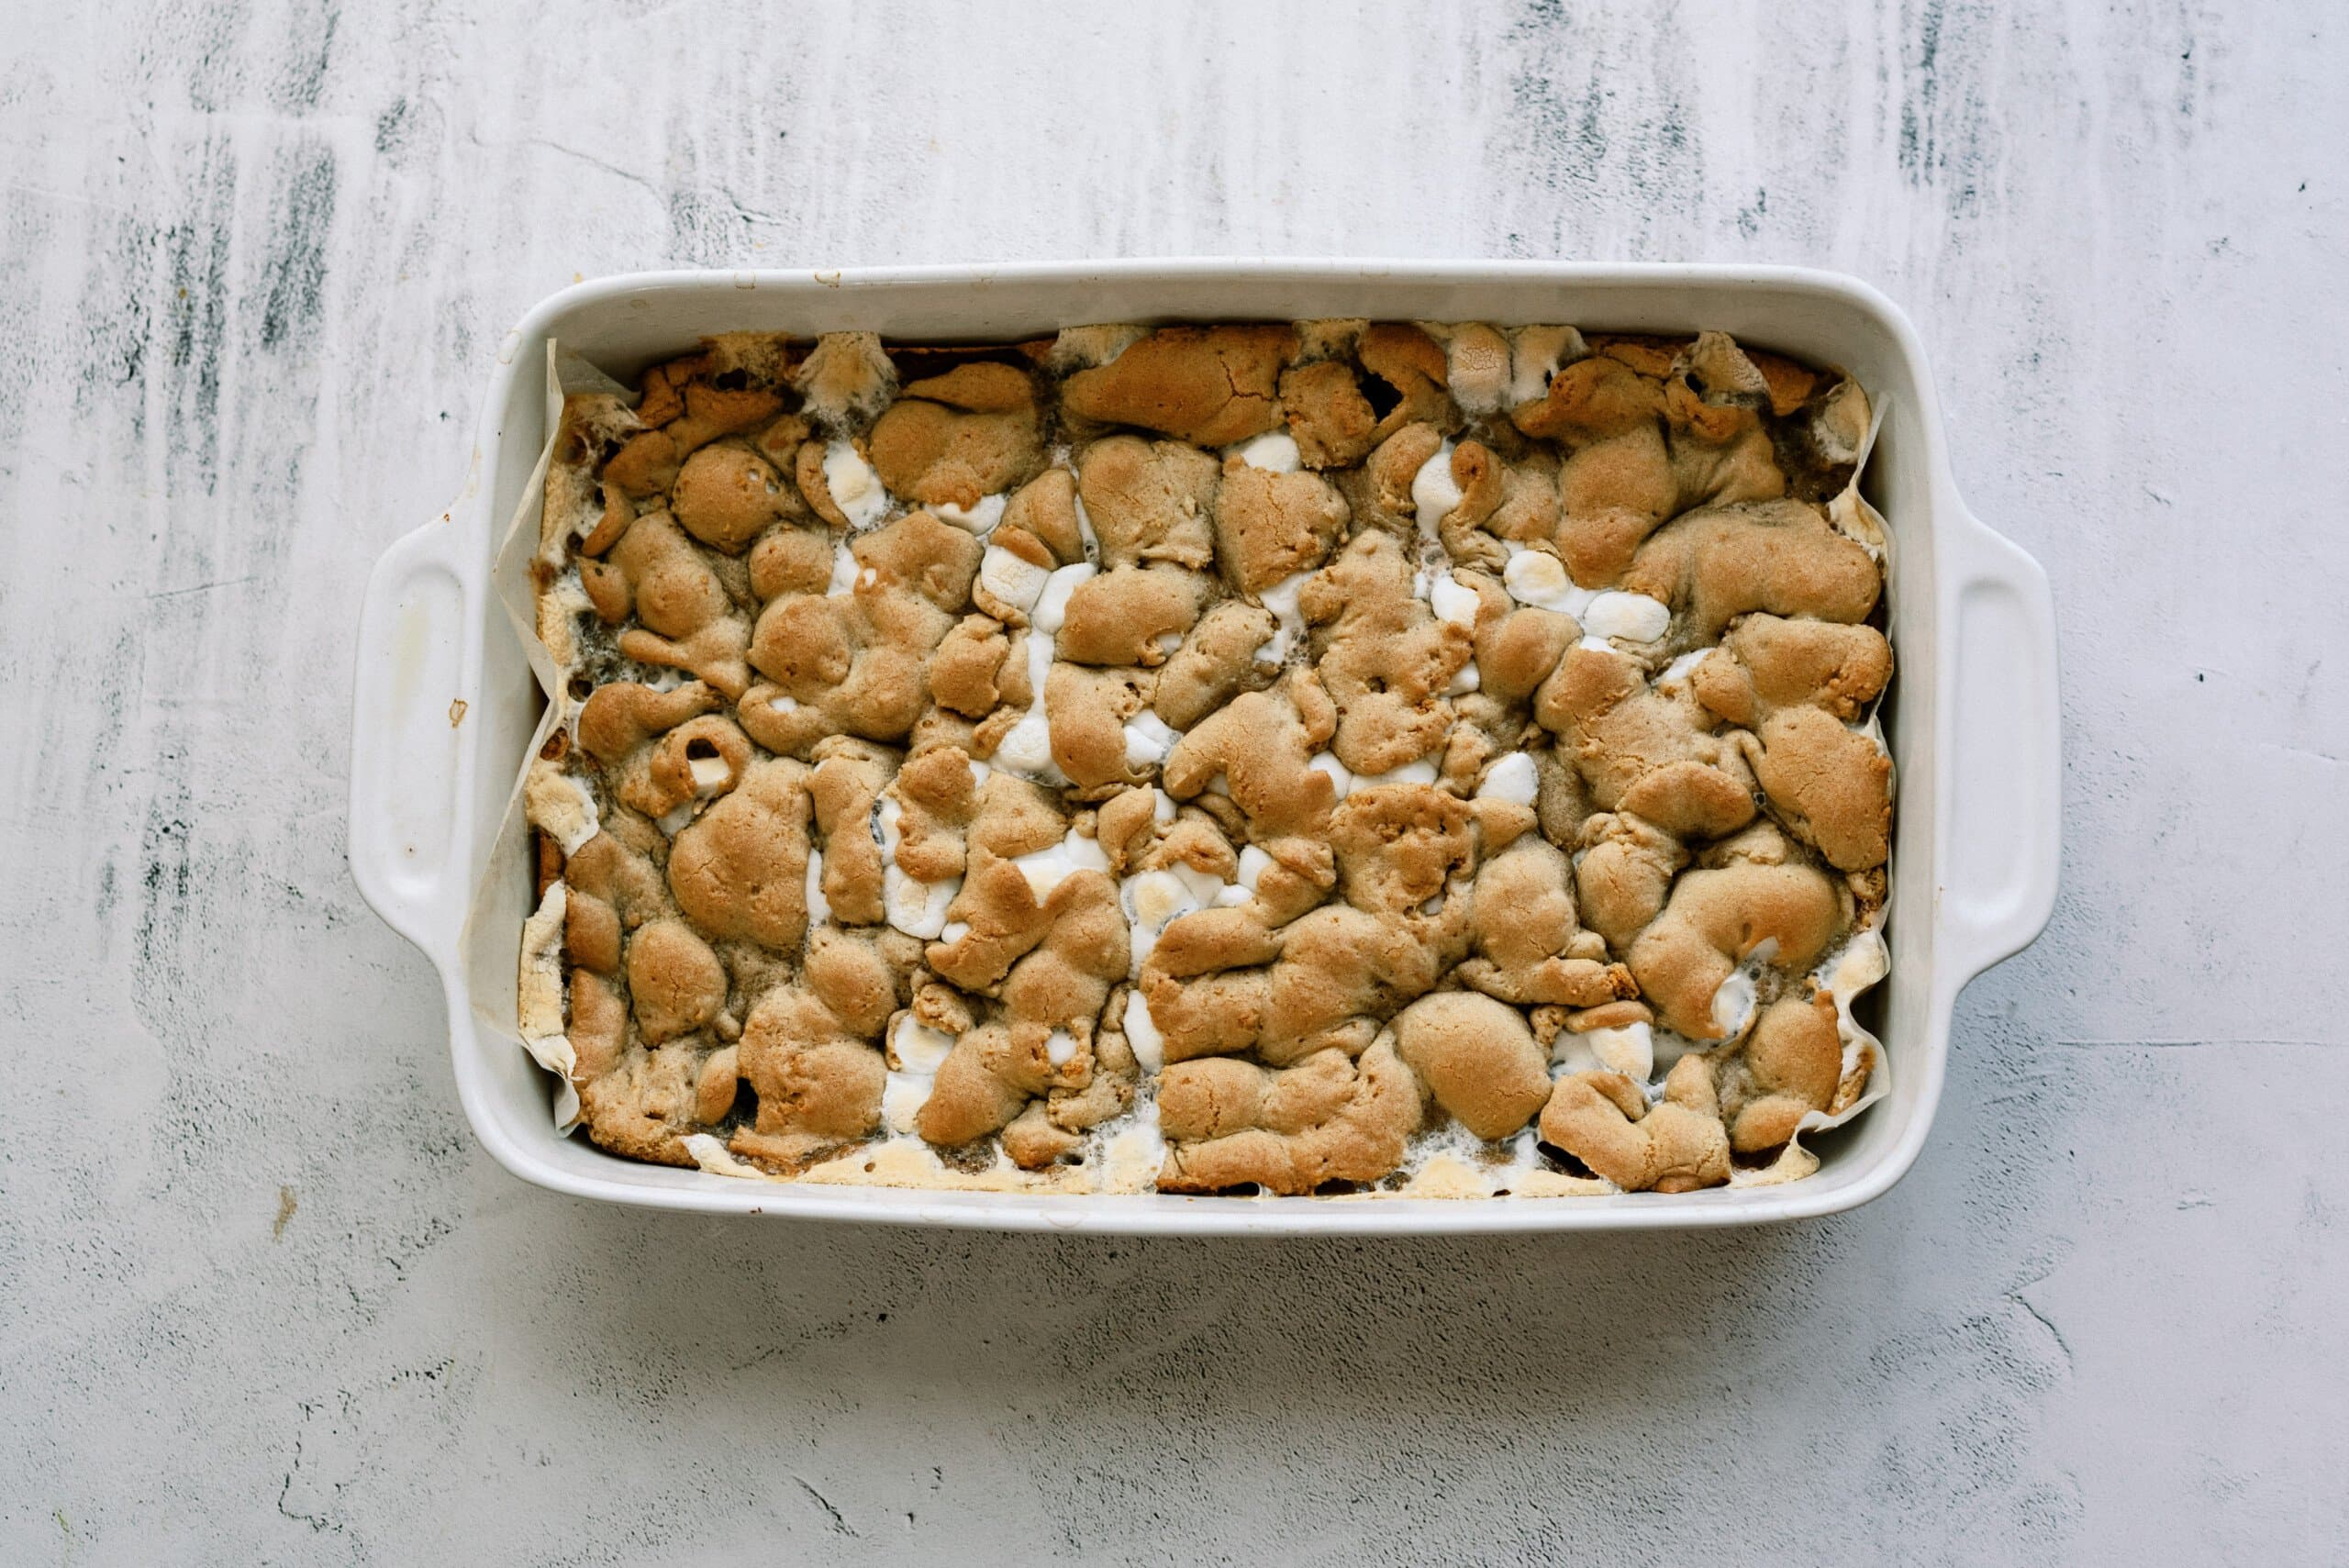 smores bars baked in a baking dish